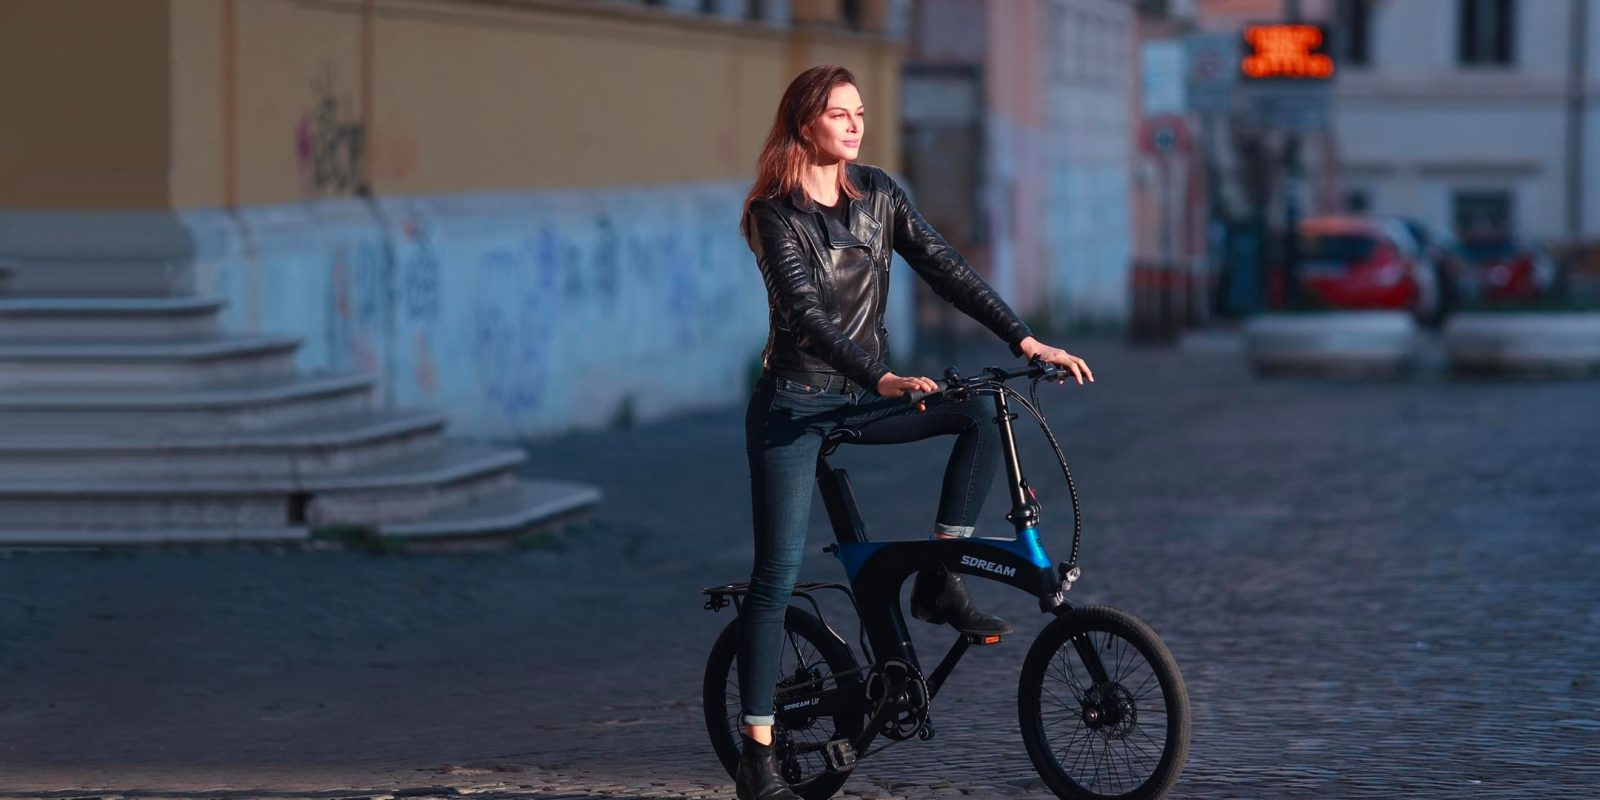 SDREAM Ur is a GPS-enabled folding electric bike with suspension for under $1k